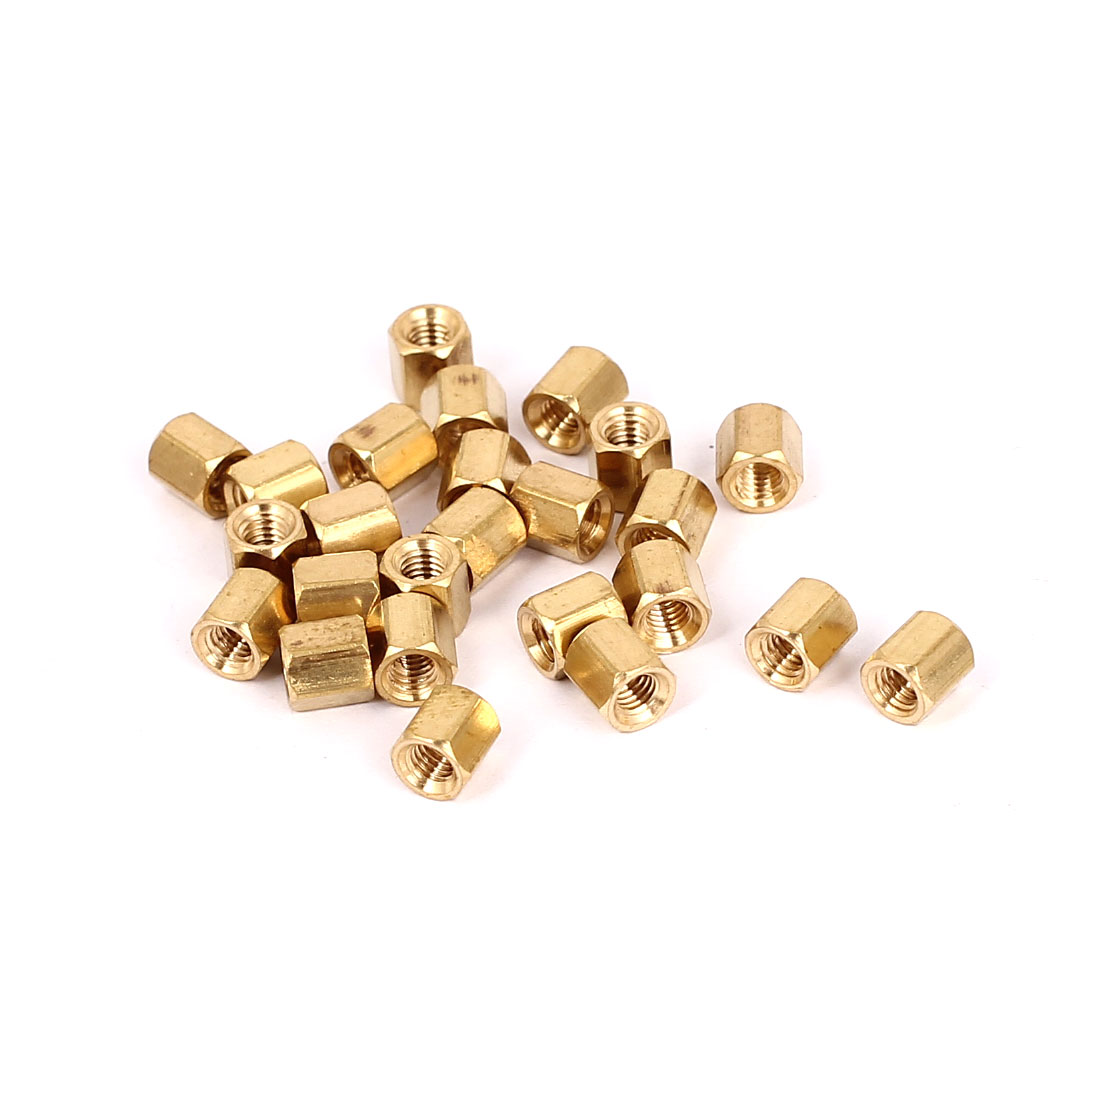 Malleable Brass Flat Top Sign Standoffs,3//4 x 1,for Acrylic,Glass or Other Hard Panel Material,4 PCS Package 3//4 x 1